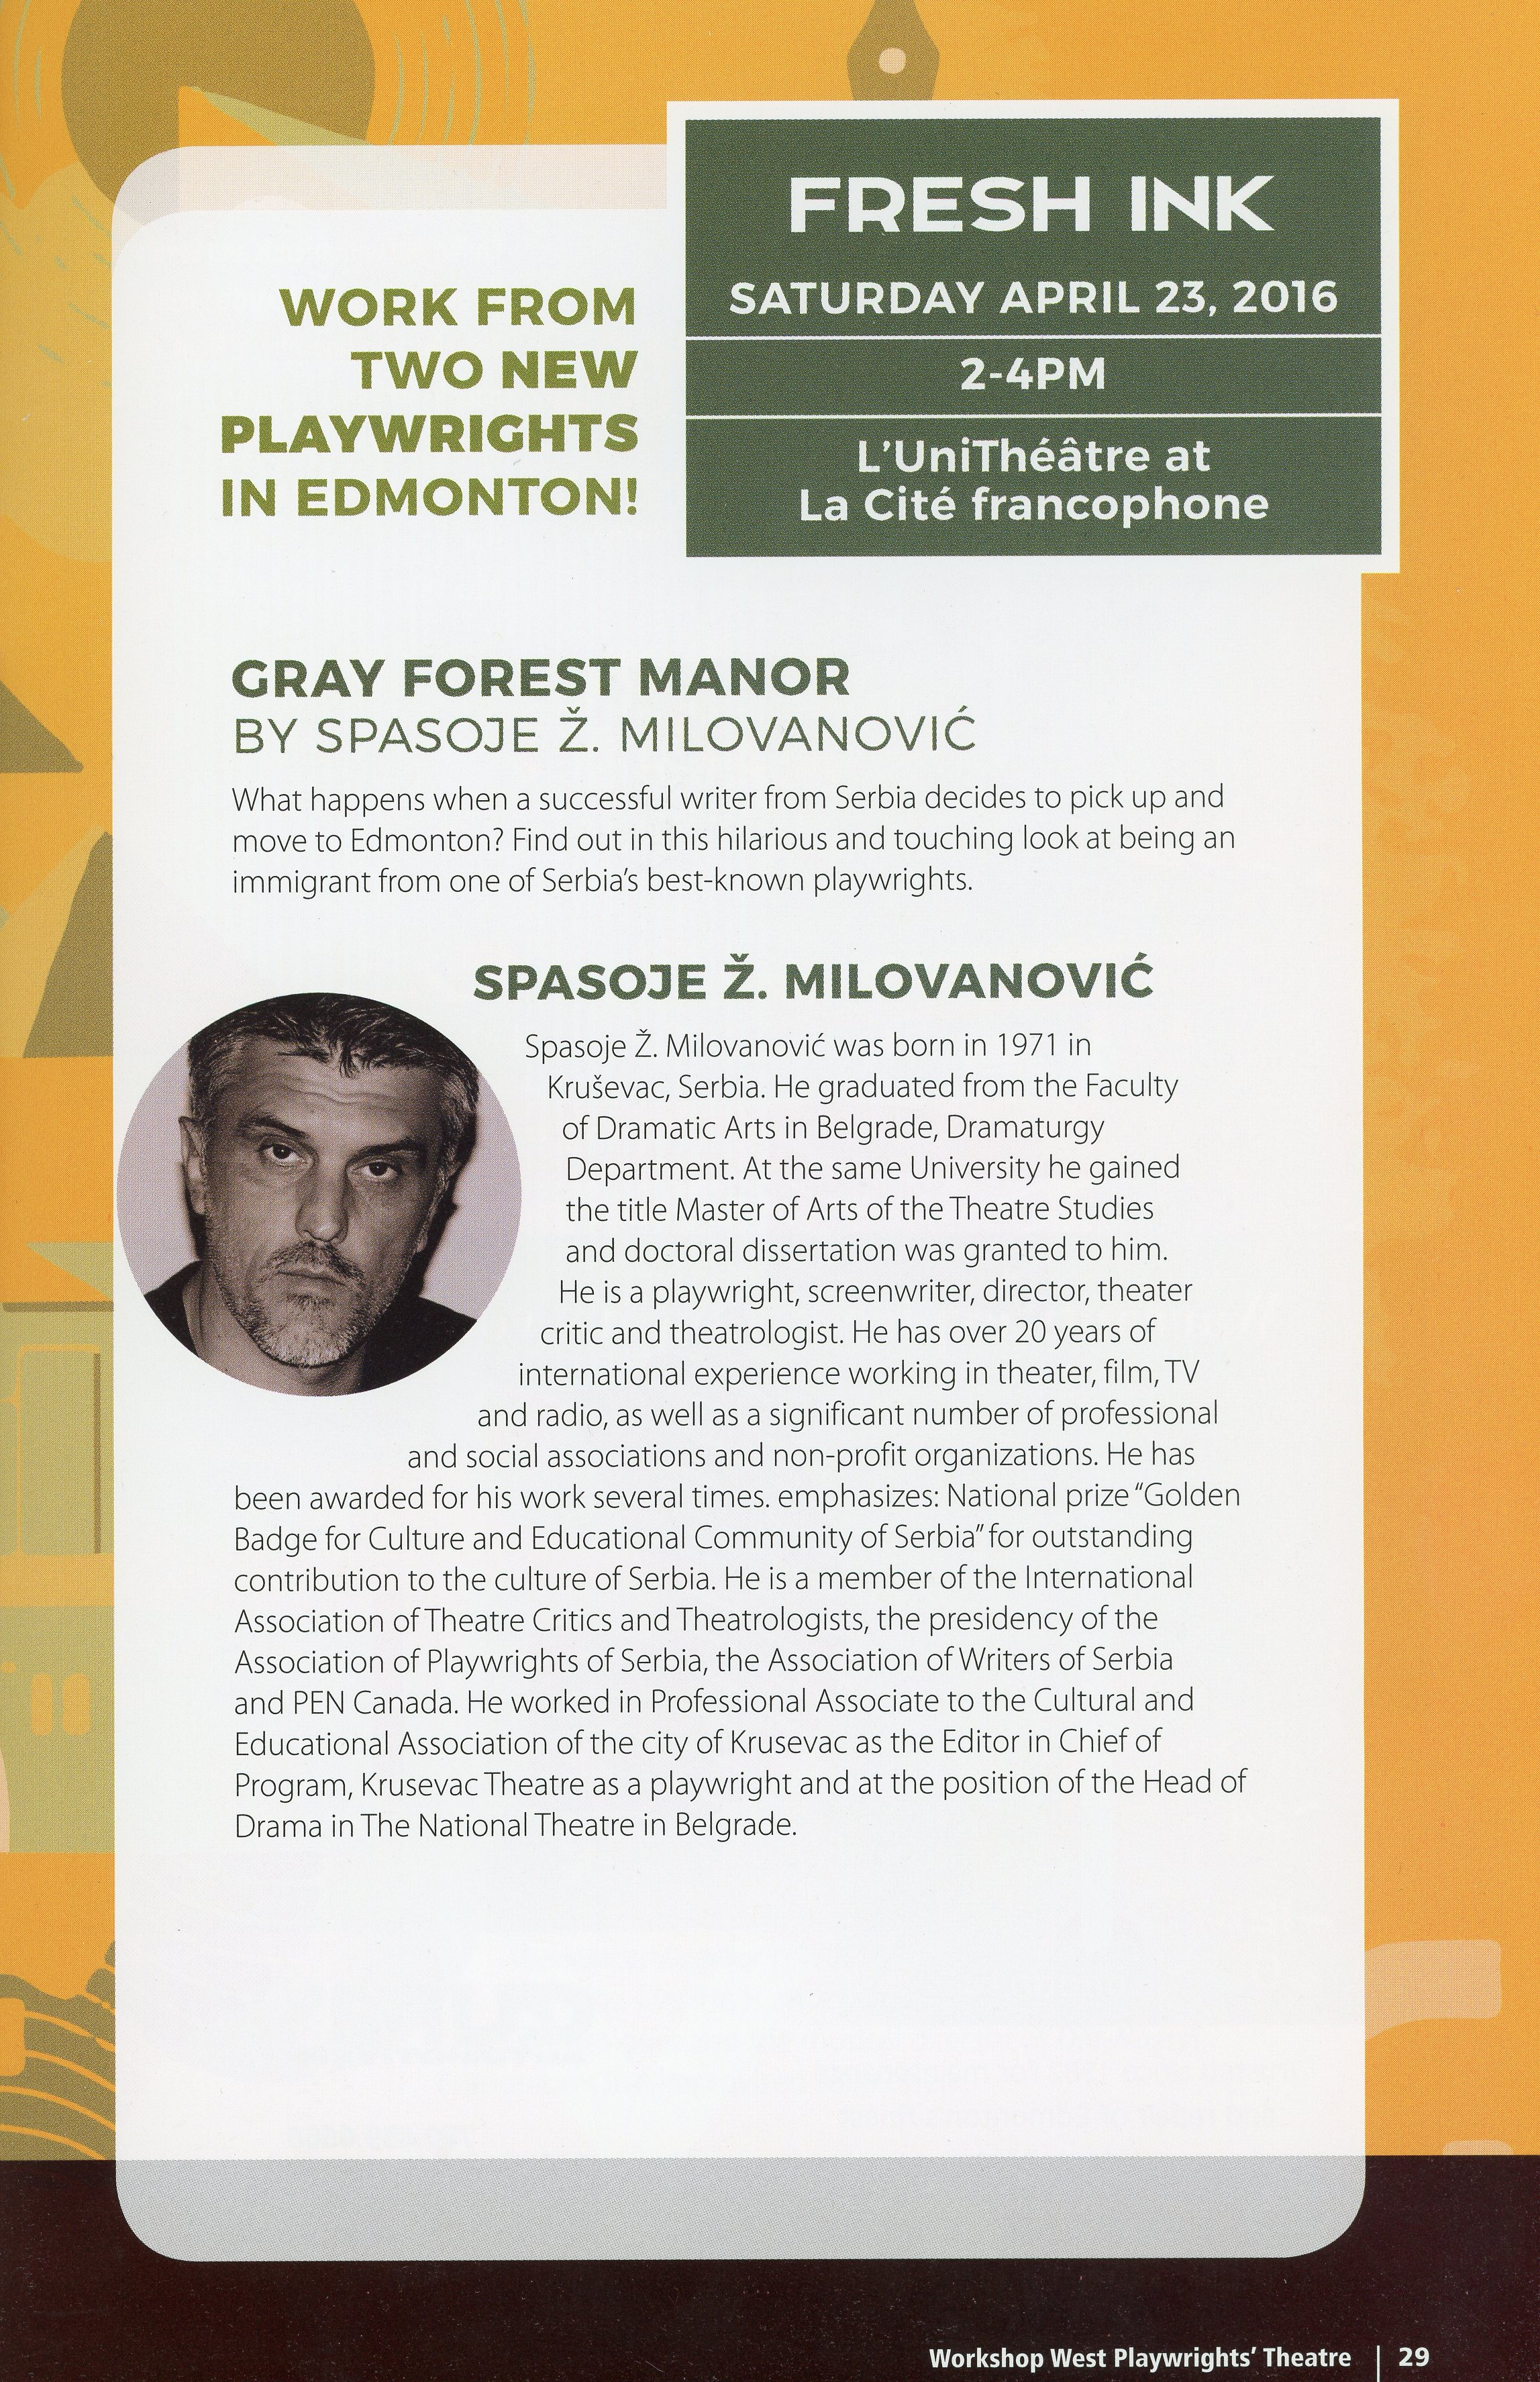 This is YEG (April 2016)-Program Information-Fresh Ink Part 1_JPEG.jpg